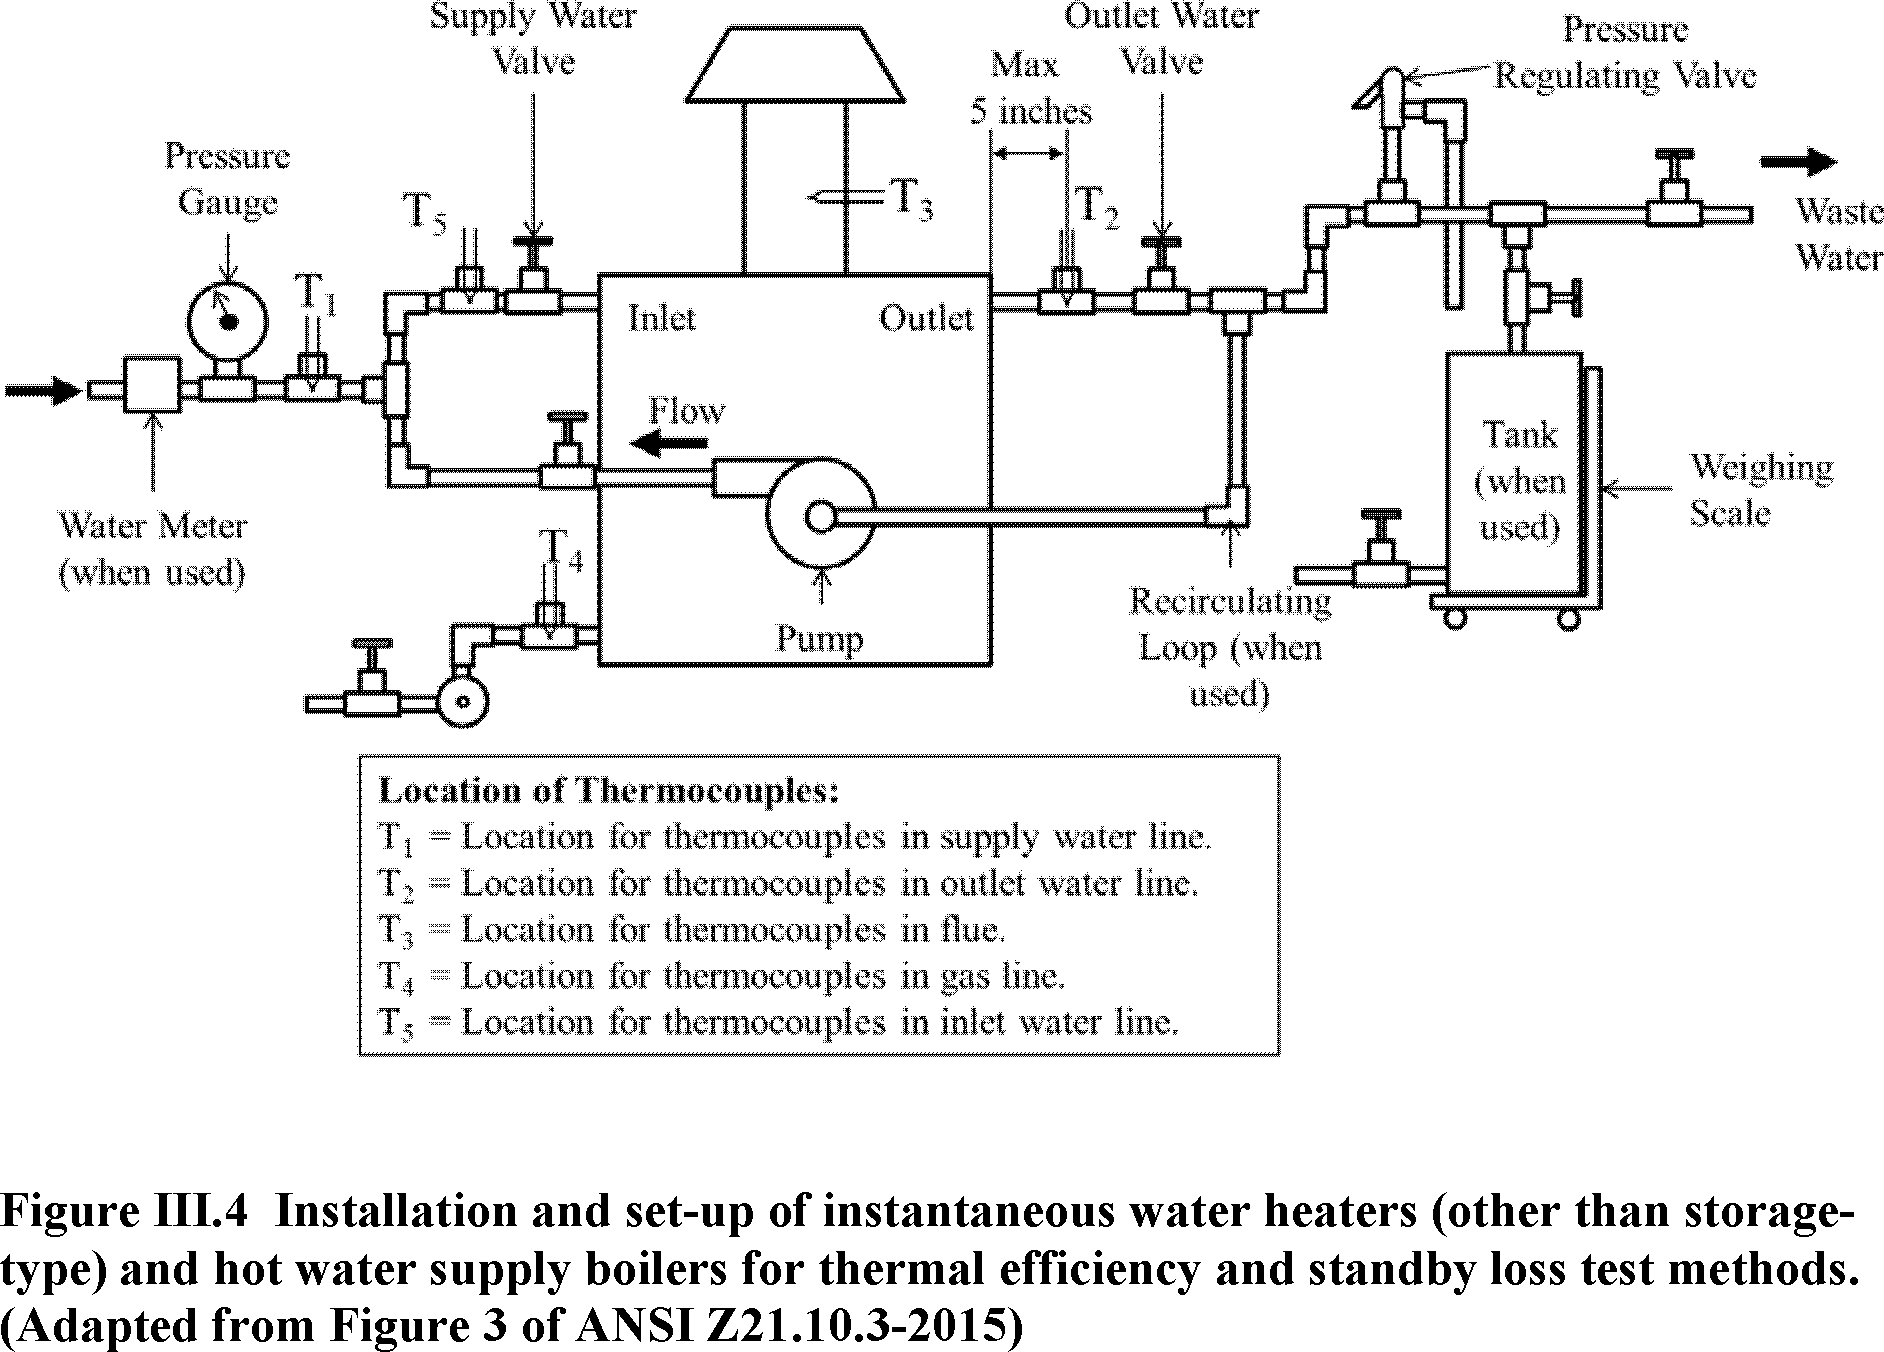 figure iii 4 and the proposed specifications for the placement of temperature sensors placement of water valves and placement of a recirculating loop  [ 1884 x 1352 Pixel ]